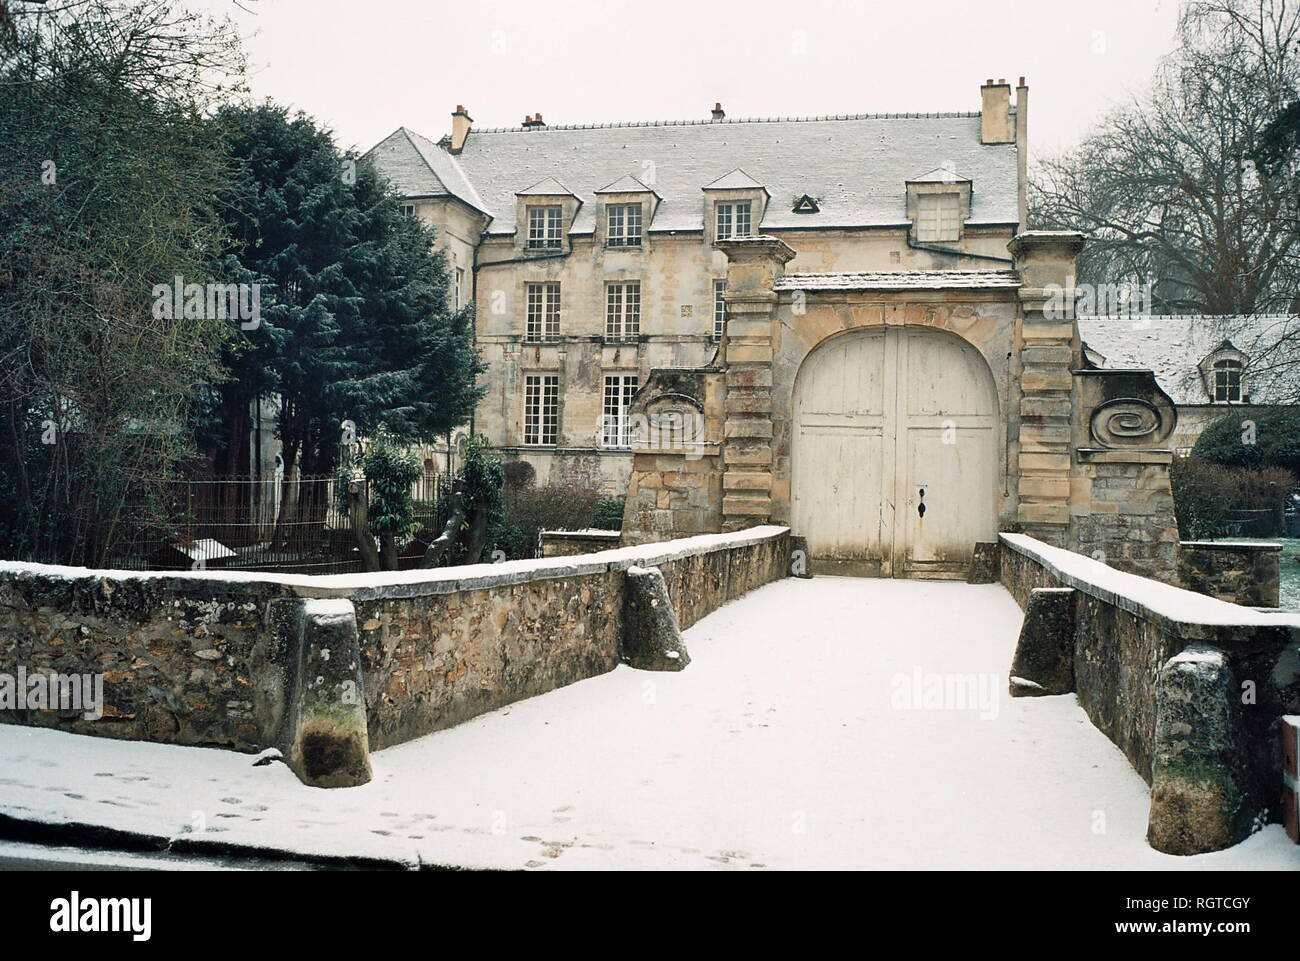 AJAXNETPHOTO. JANUARY, 2009.- LOUVECIENNES,FRANCE. SCENE SUBJECT OF A VIEW PAINTED BY JEANNE BAUDOT 1877 - 1957 - 'LE CHATEAU DU PONT EN HIVER, EFFET DE NEIGE, 1948.' THE BRIDGE HOUSE IN WINTER, EFFECT OF SNOW. PHOTO:JONATHAN EASTLAND/AJAX REF:CD2587 30 29A Stock Photo